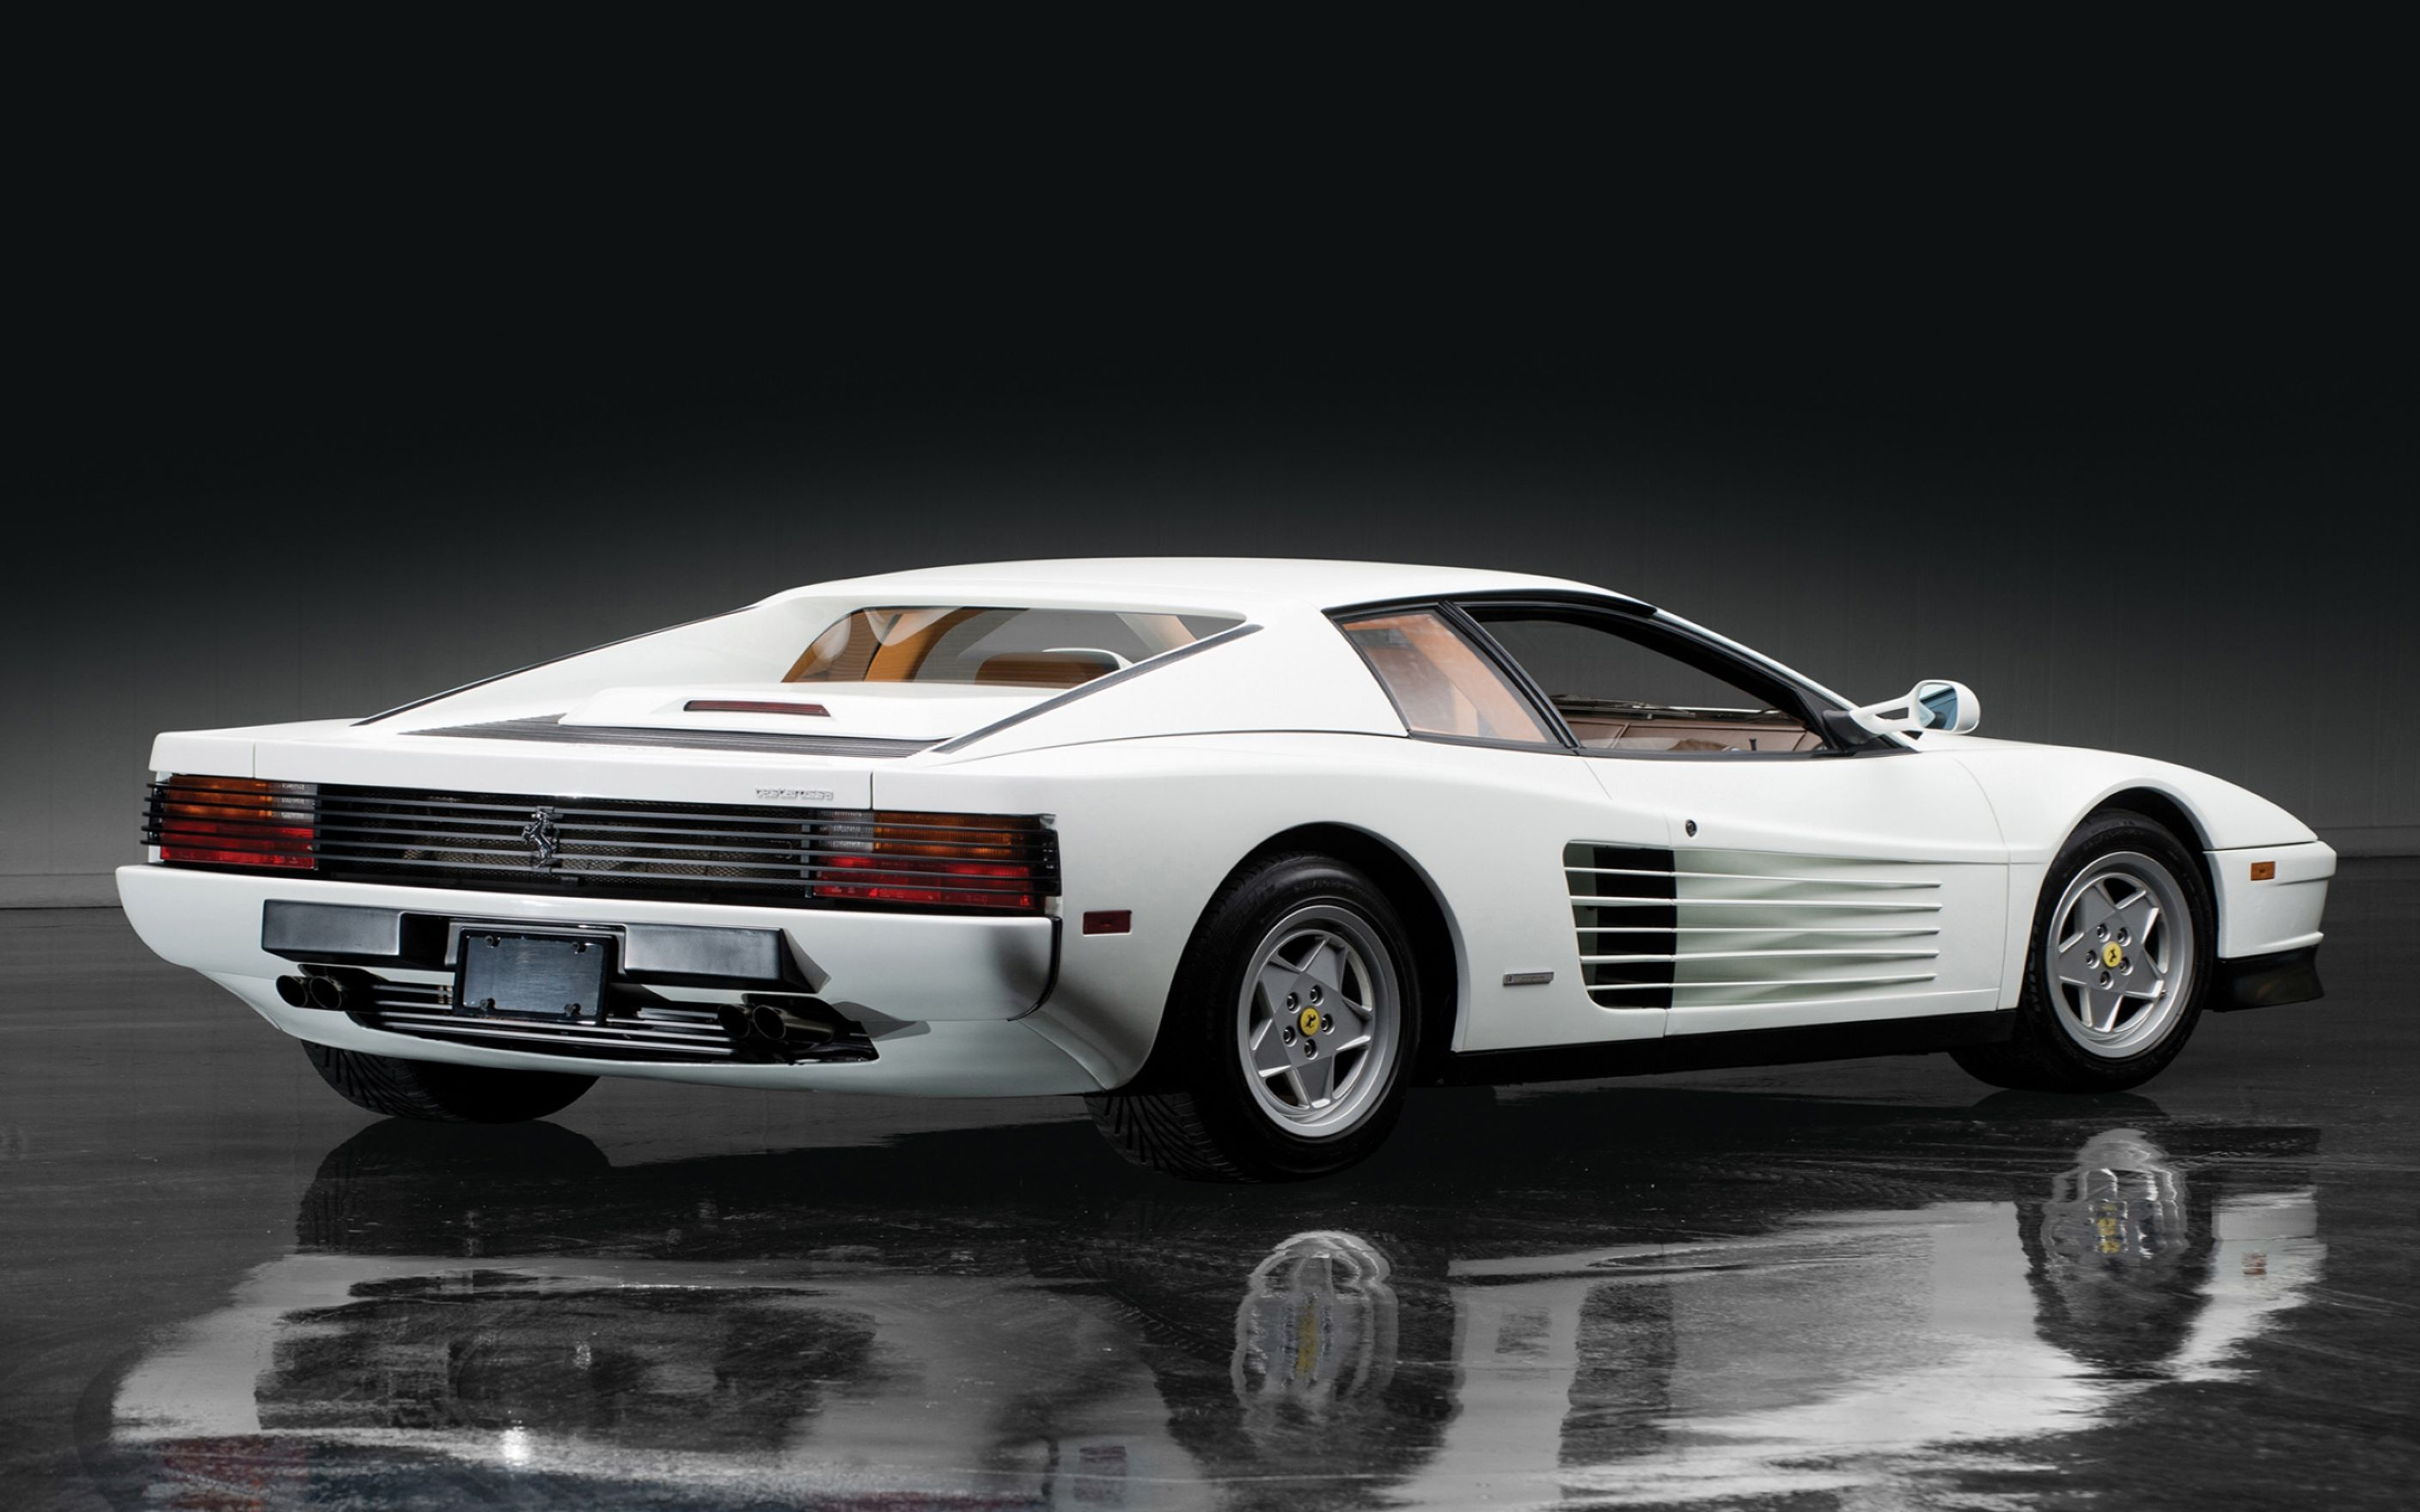 Download free HD Ferrari Testarossa Wallpaper, image